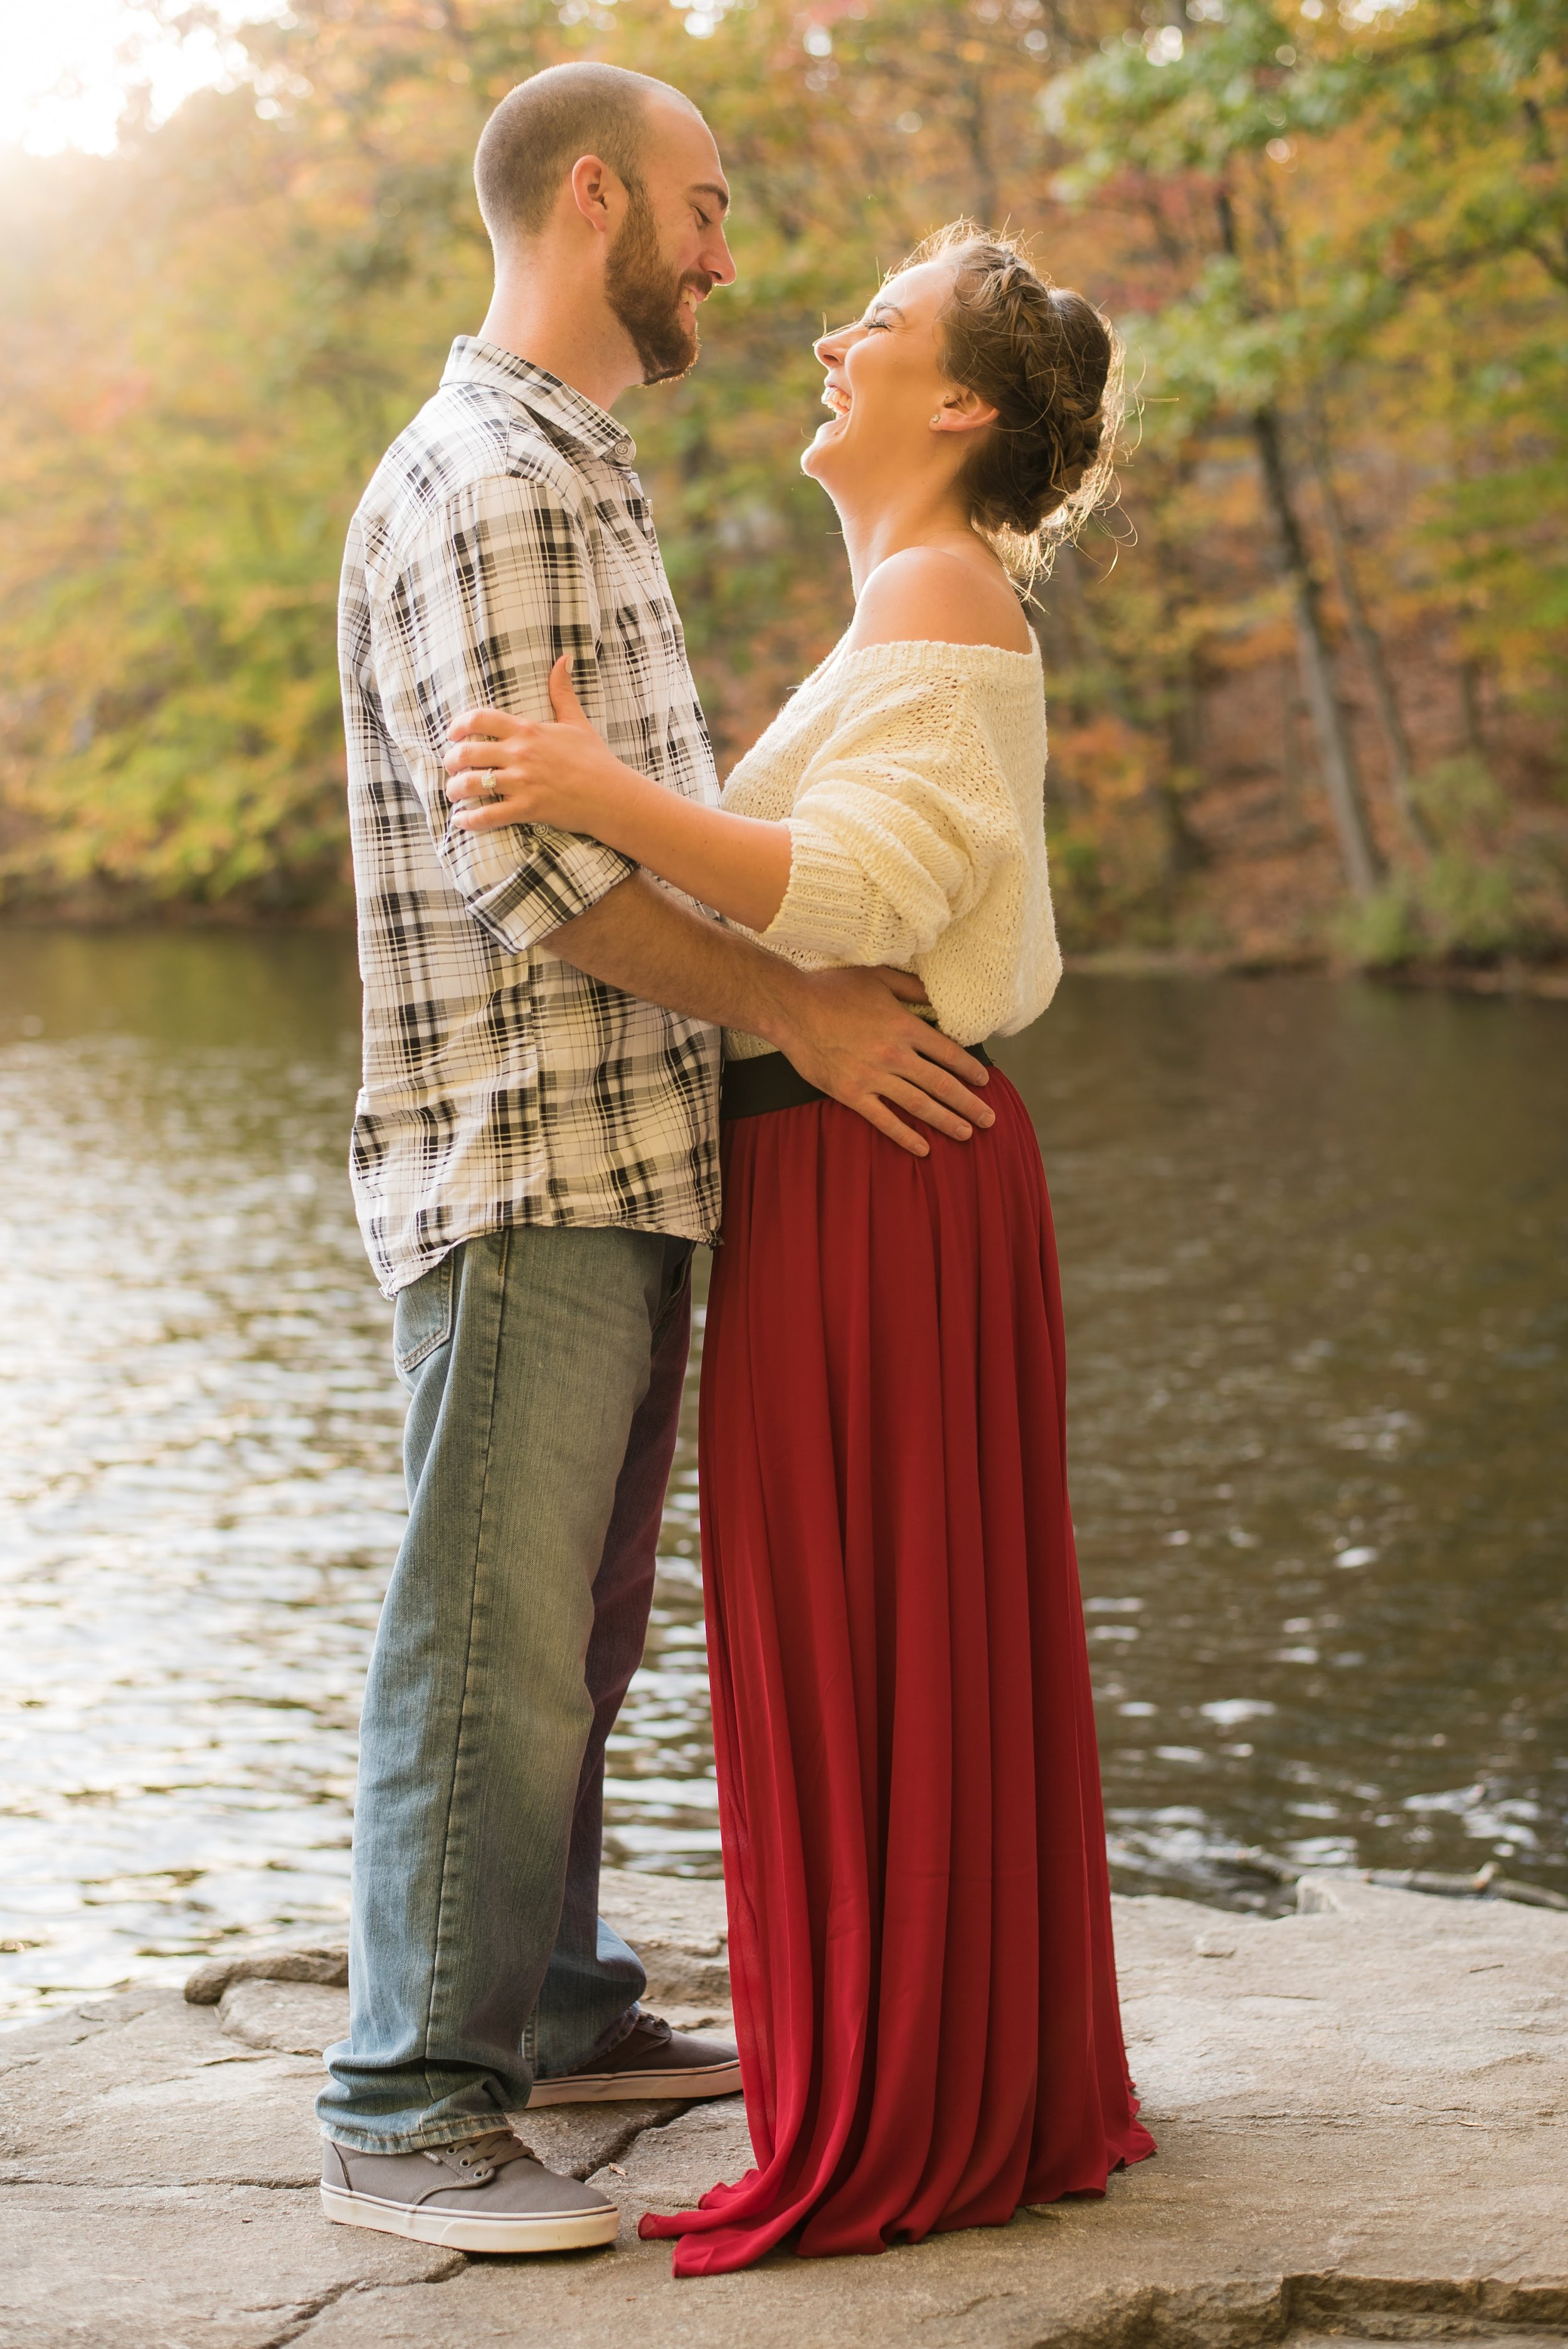 _KLE5139Knothe Engagement_.jpg